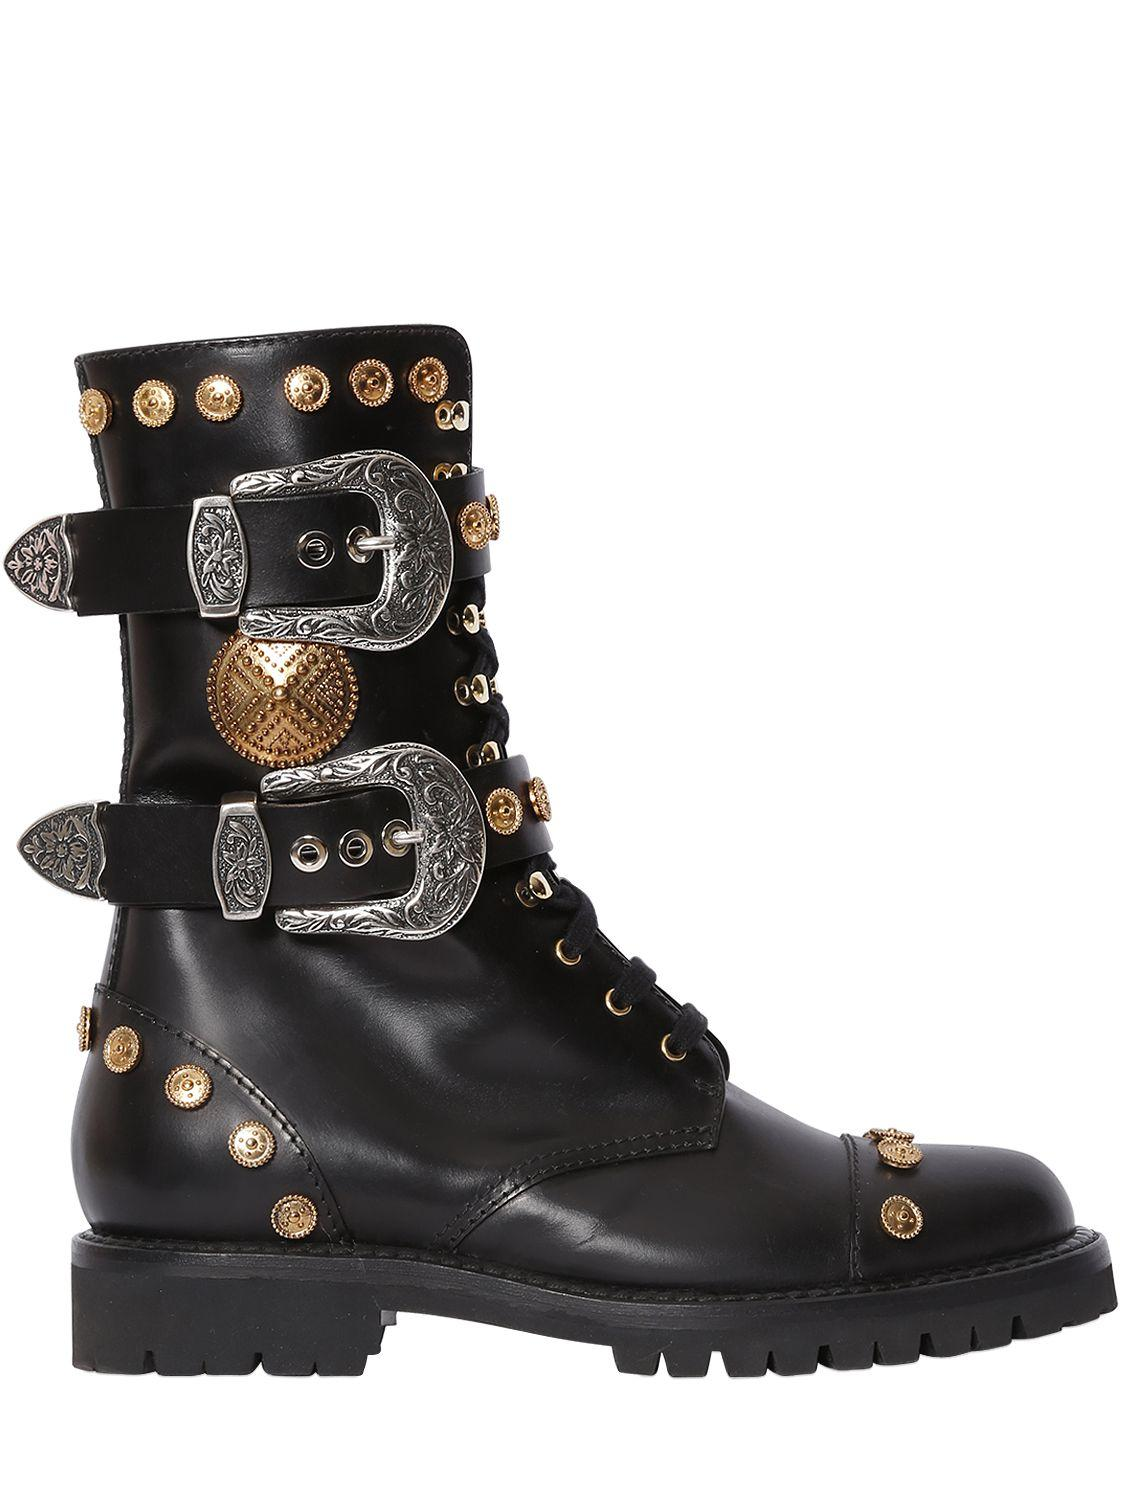 Creative Breckelle39s Women39s 39Rocker2439 Black Studded Military Combat